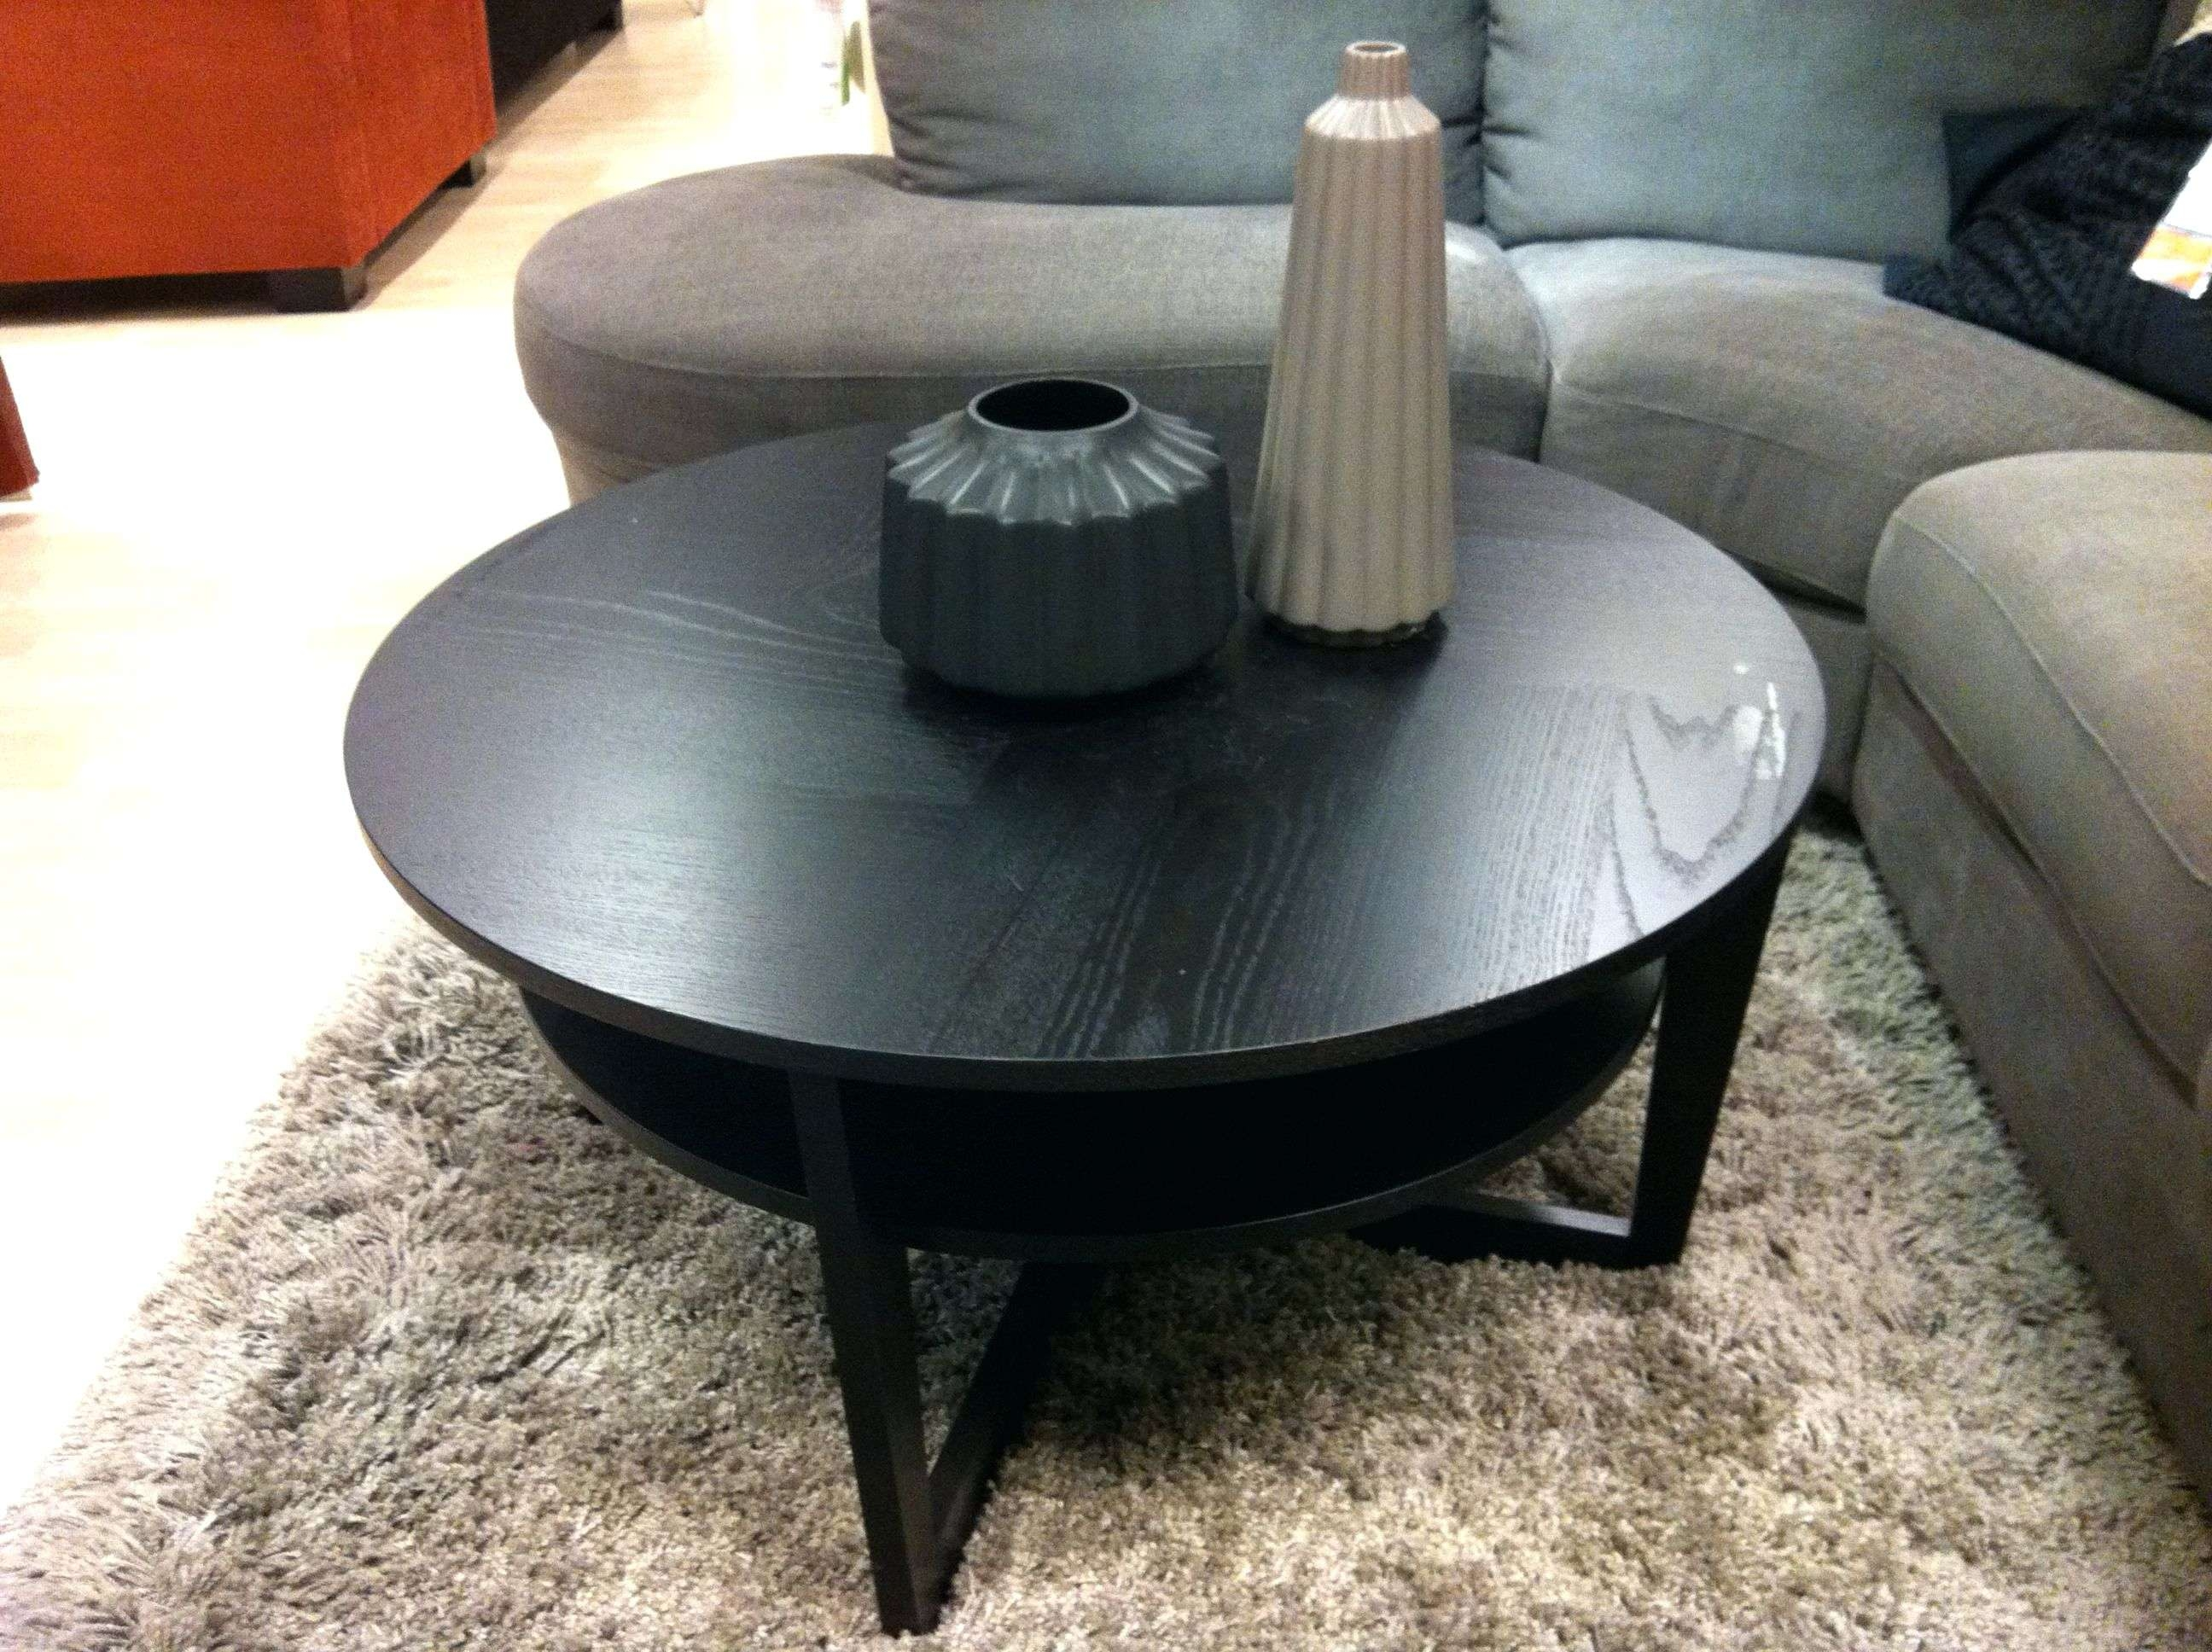 Coffee Tables : Round Coffee Table Ikea Ikea Living Room Tables Intended For Latest Black Circle Coffee Tables (View 5 of 20)